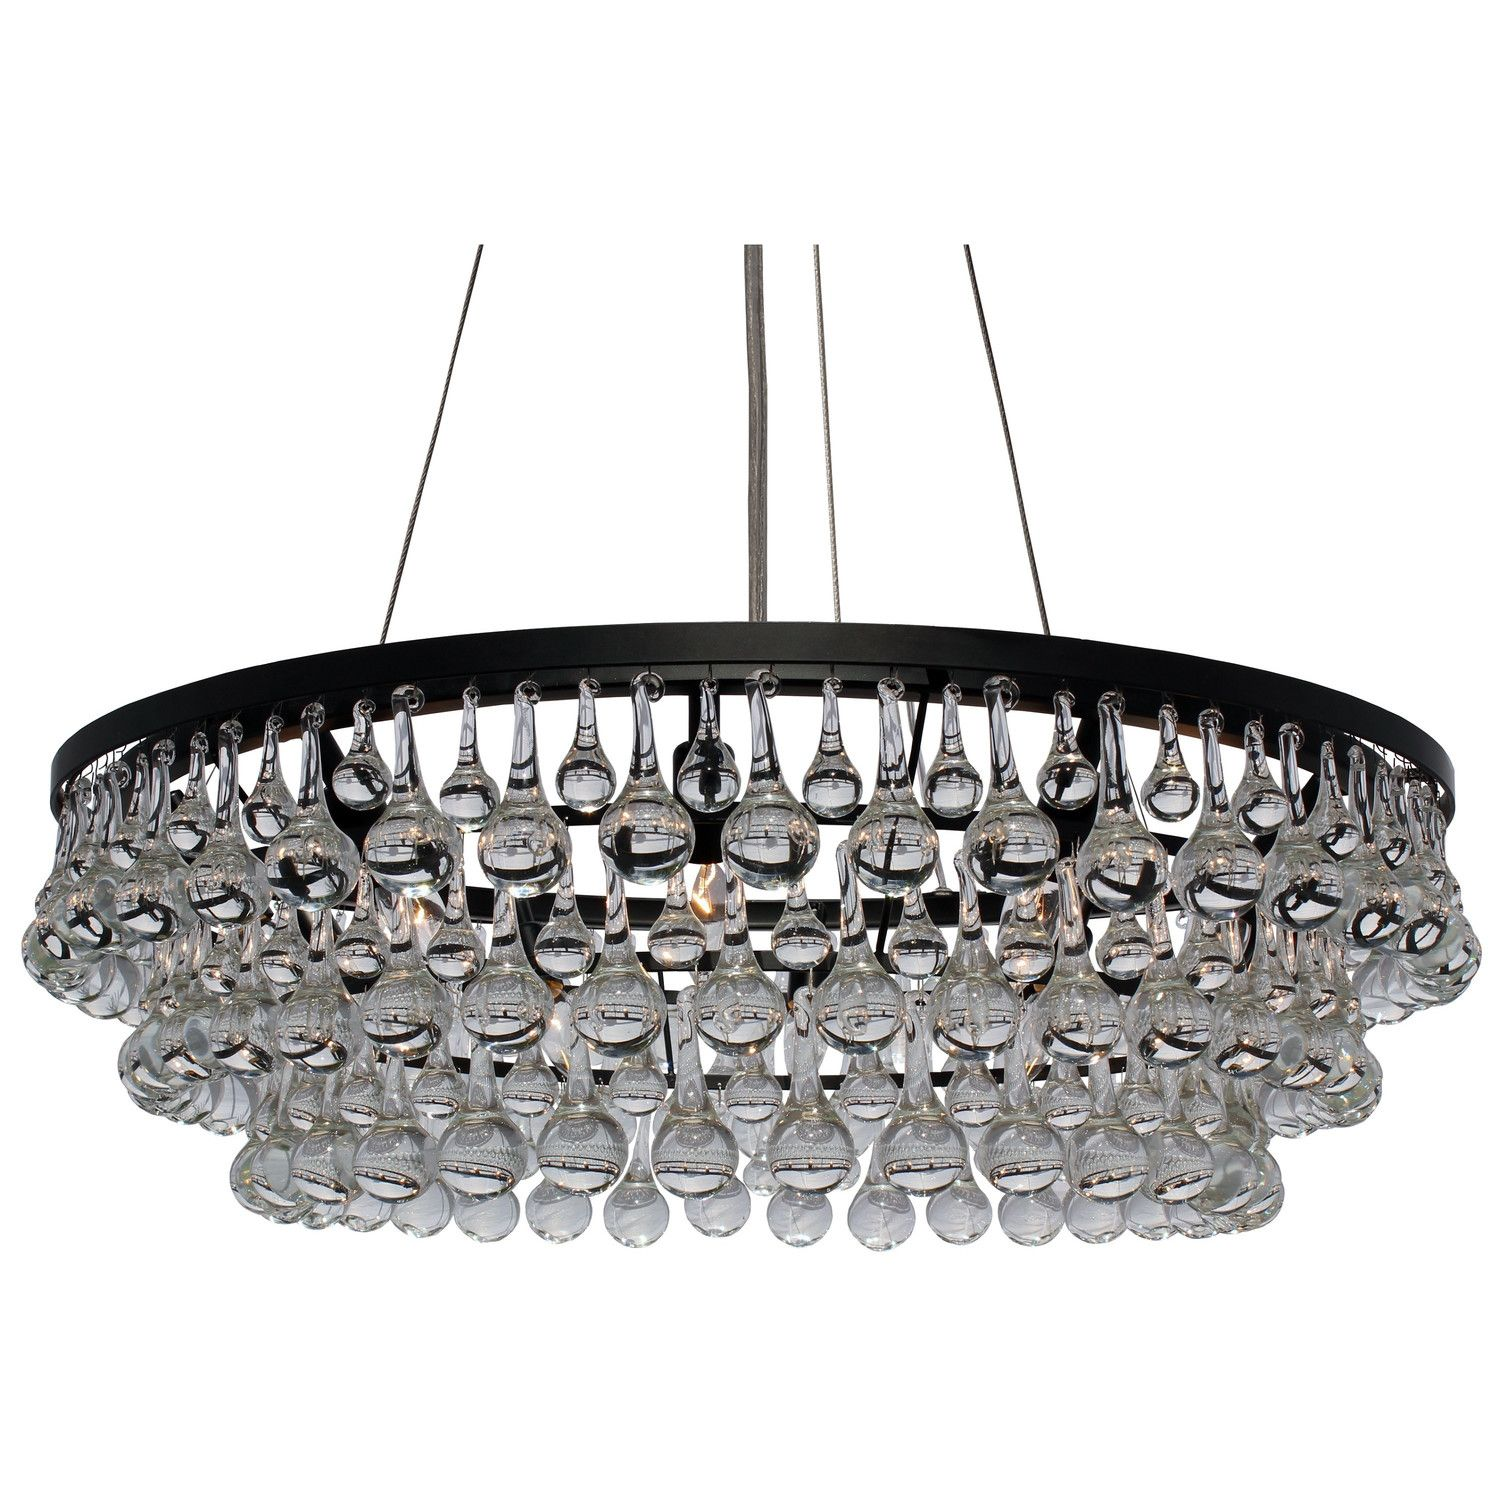 Designer chose this for the Dining Room I like it LightUpMyHome